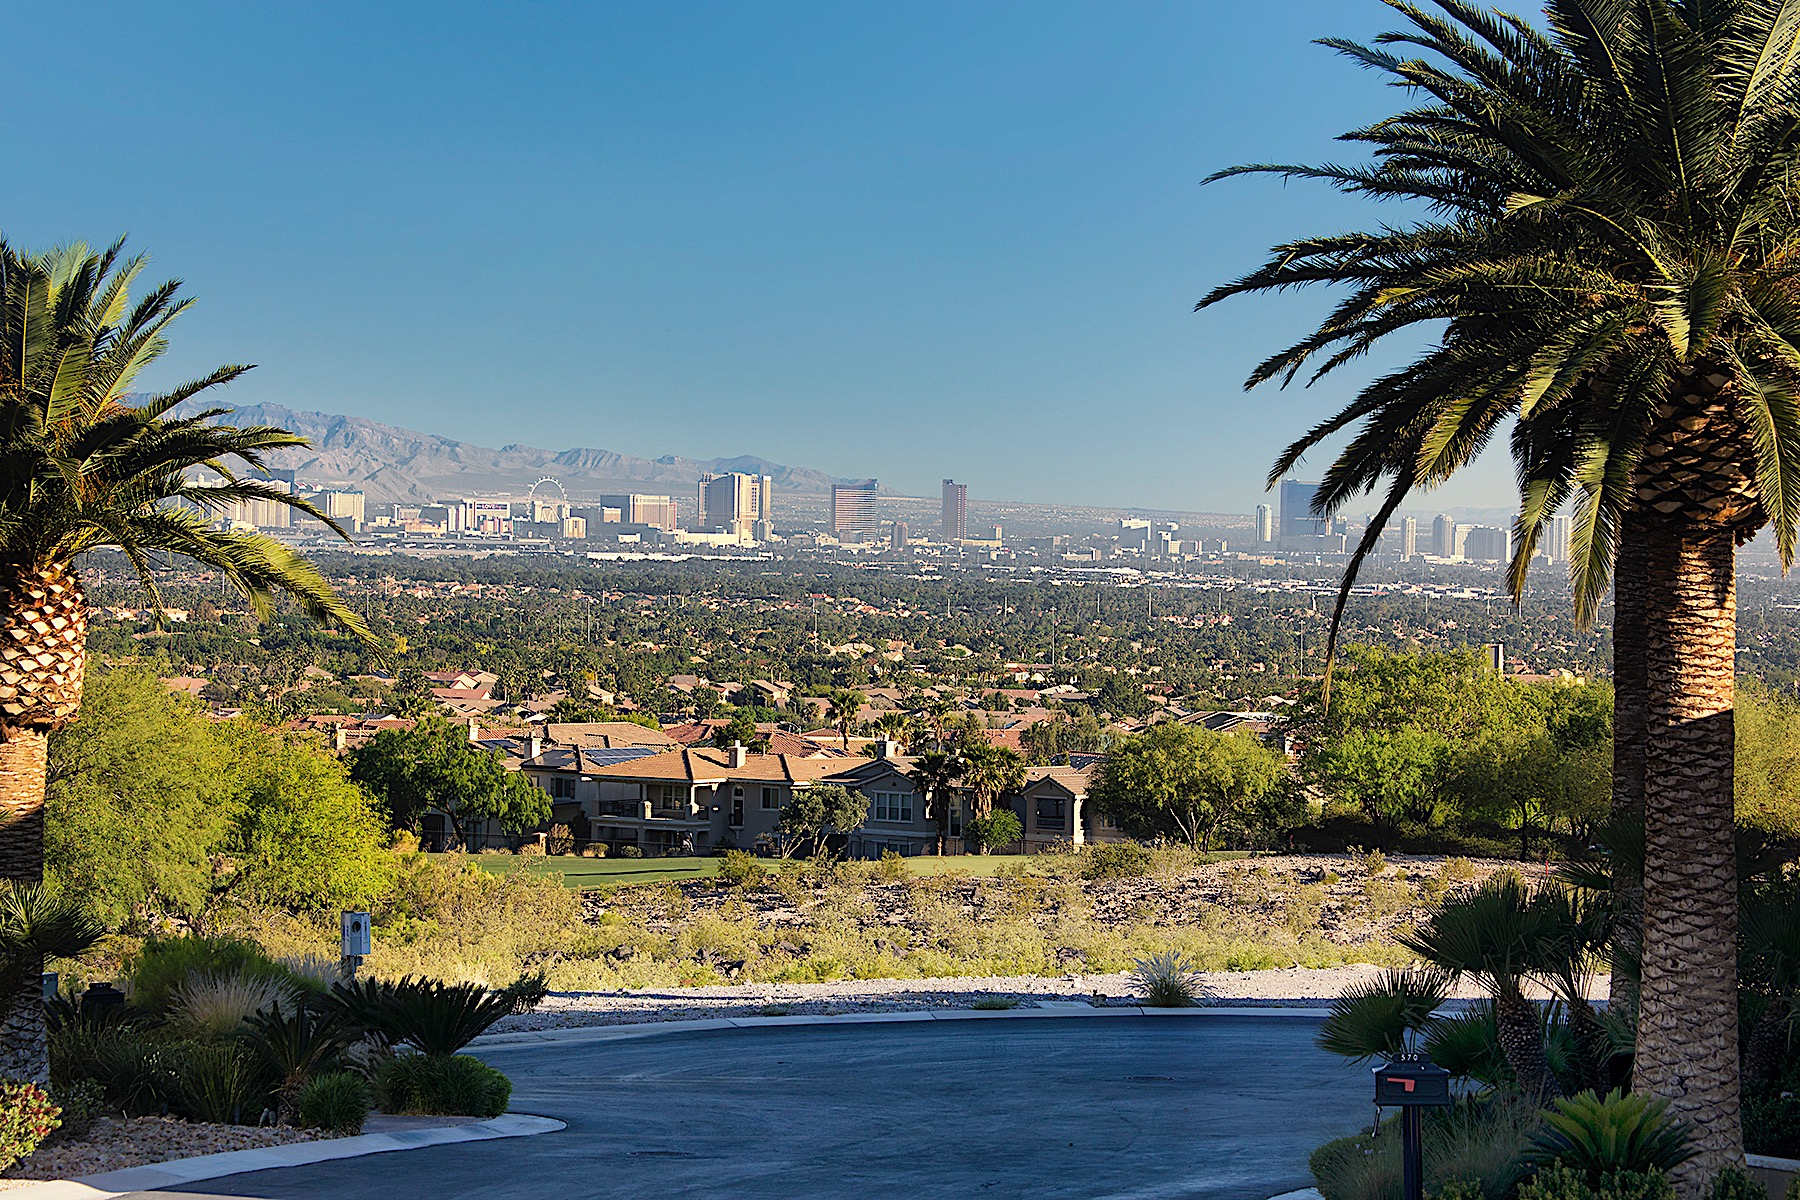 Đất đai vì Bán tại 1 Acre Strip View Bluff at MacDonald Highlands on Double Fairway Location 561 Lairmont Pl Henderson, Nevada, 89012 Hoa Kỳ